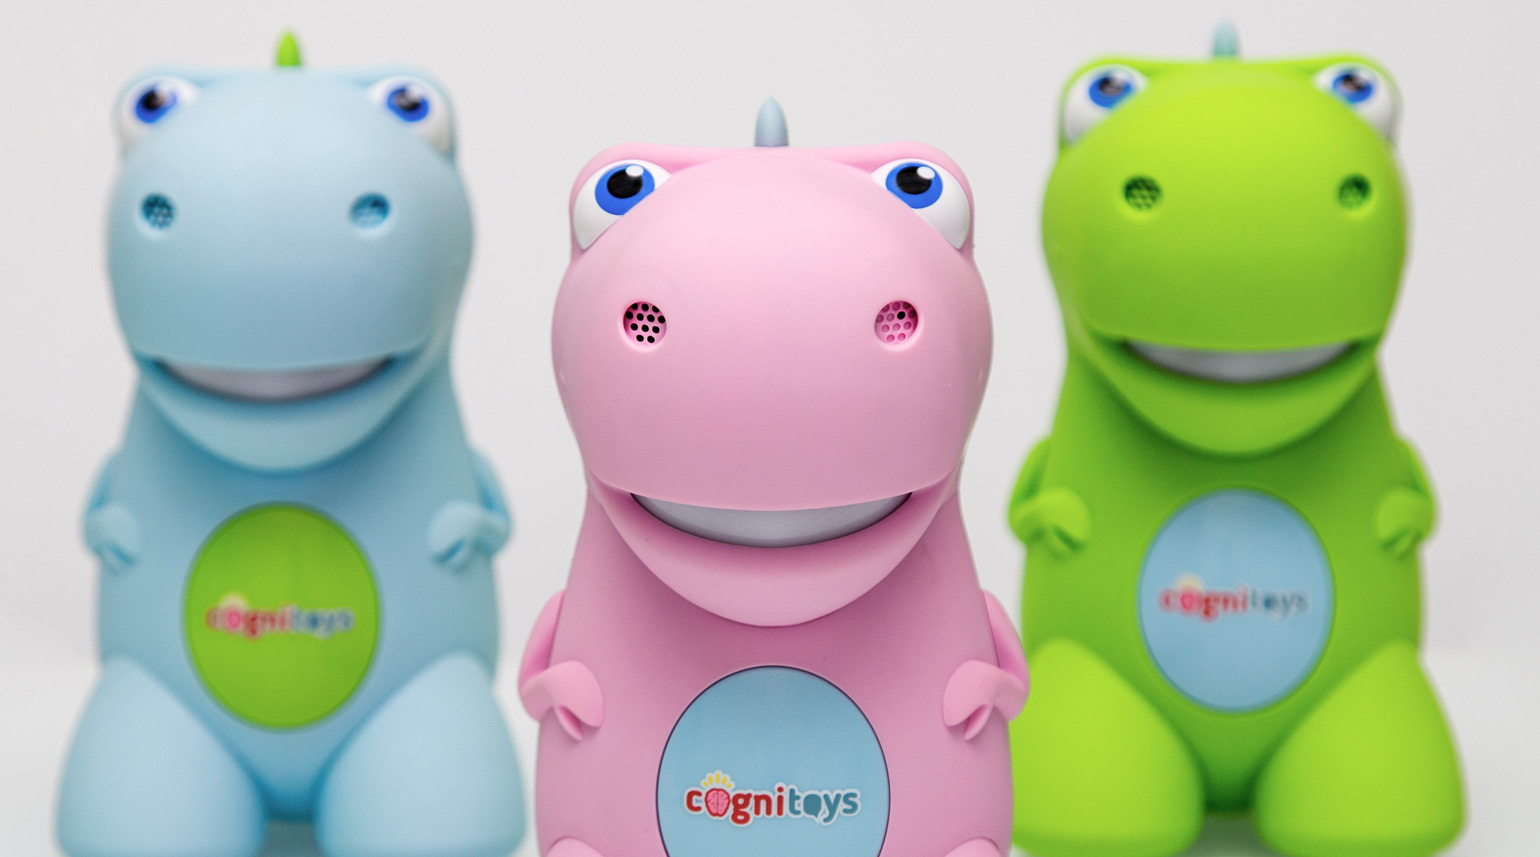 Product shot of all three colorways for the CogniToys dino.